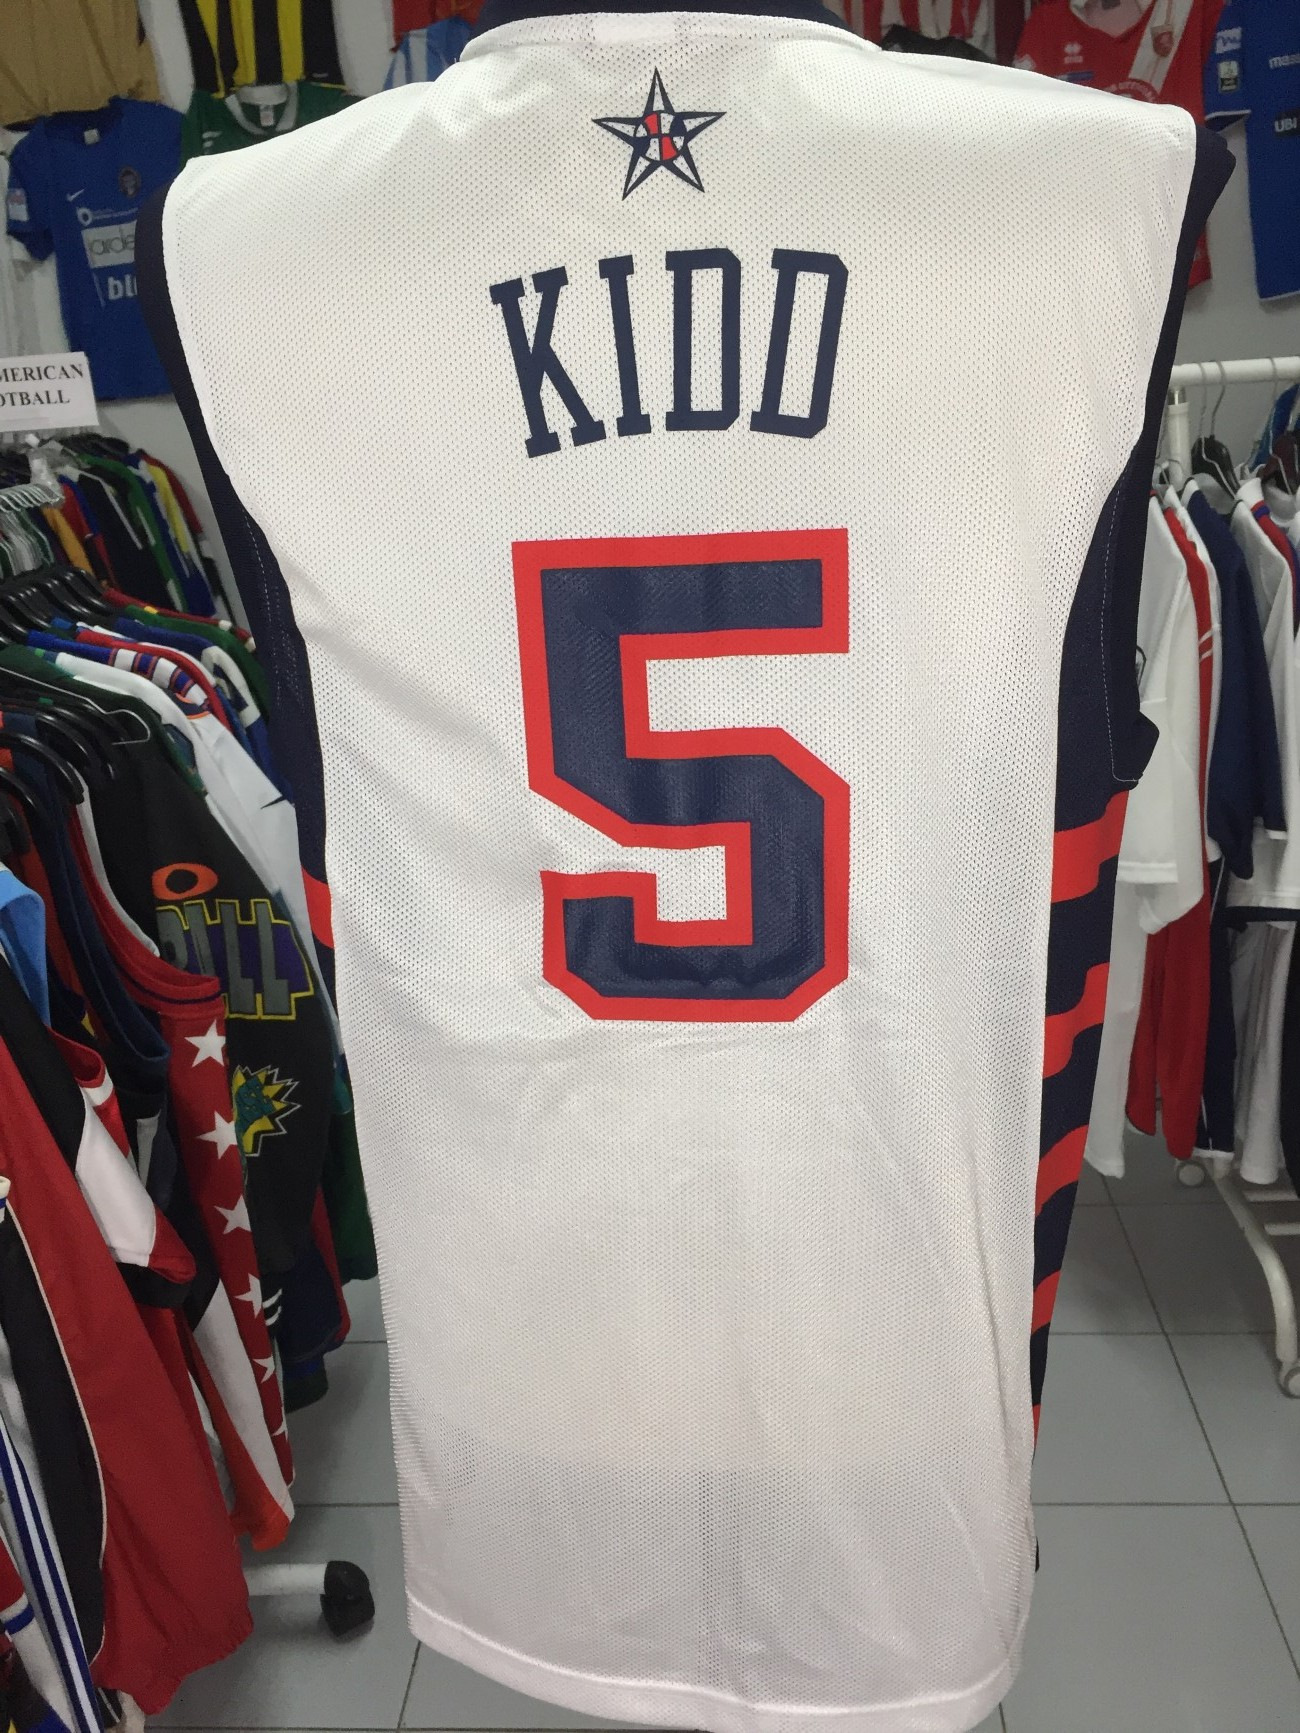 0cf506513e6 USA Basketball Away Shirt Jersey #5 Kidd Camisola de Basquetebol NBA ...